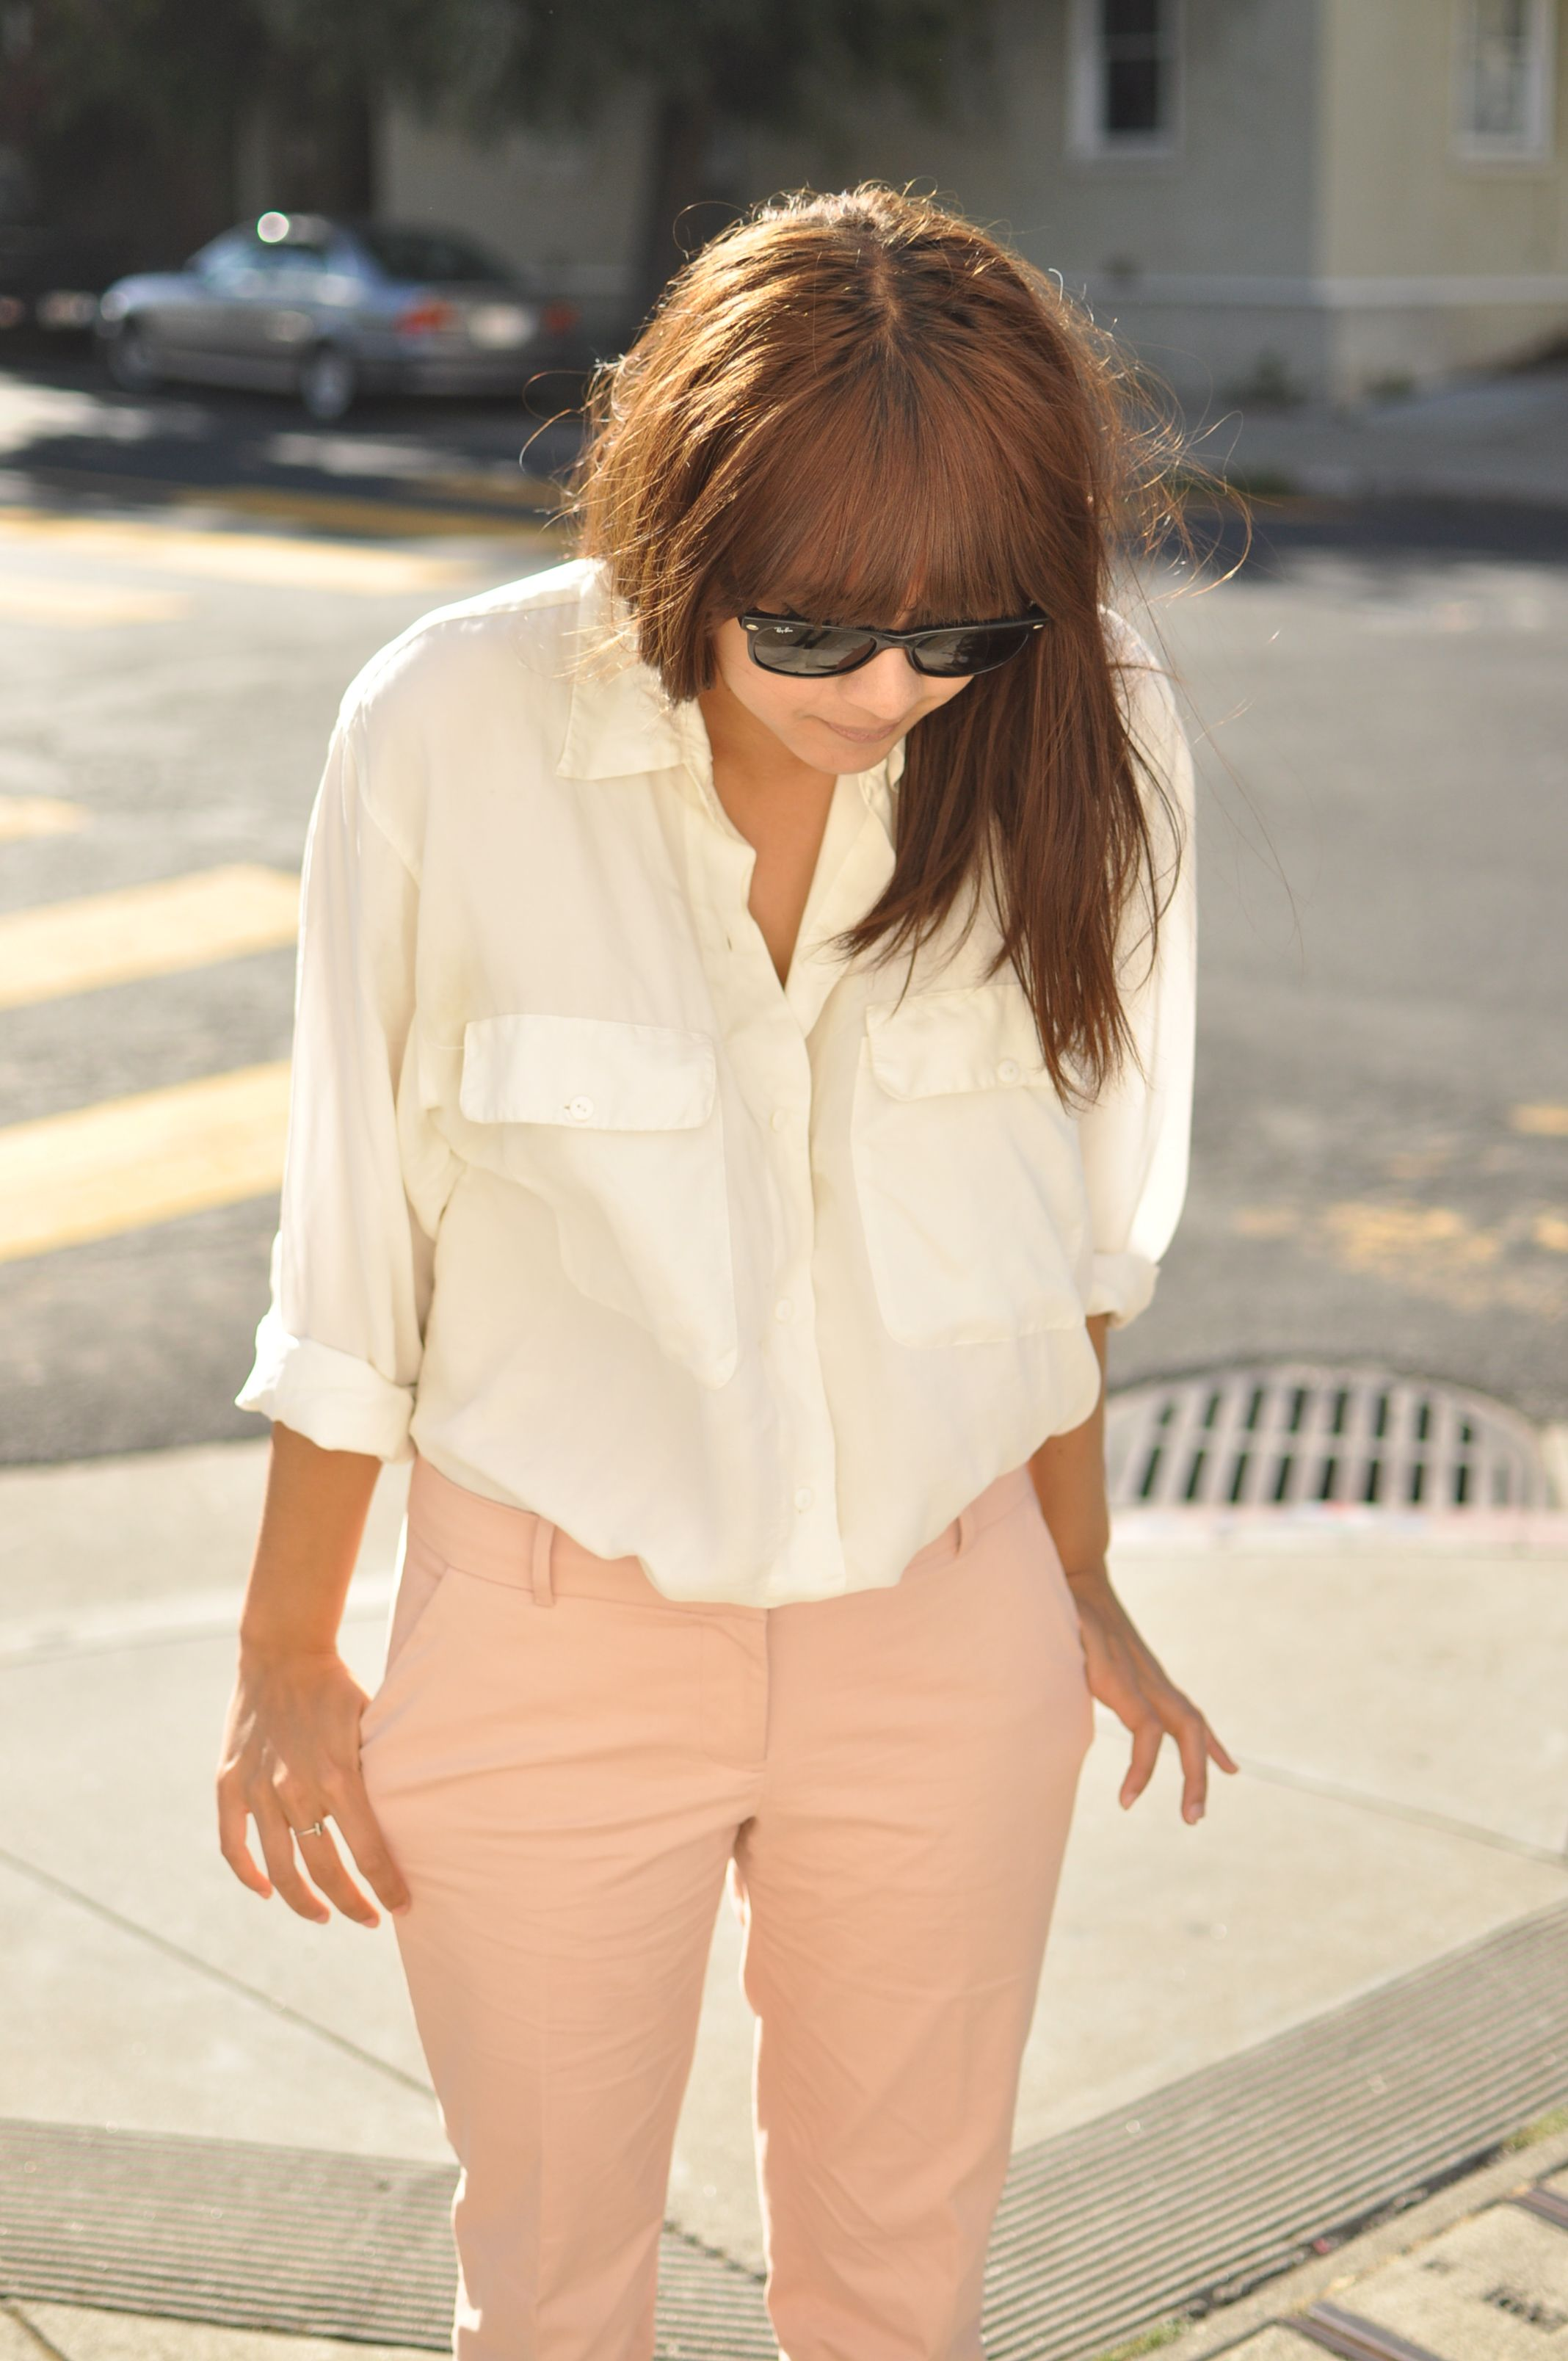 i was wearing this exact outfit yesterday white blouse